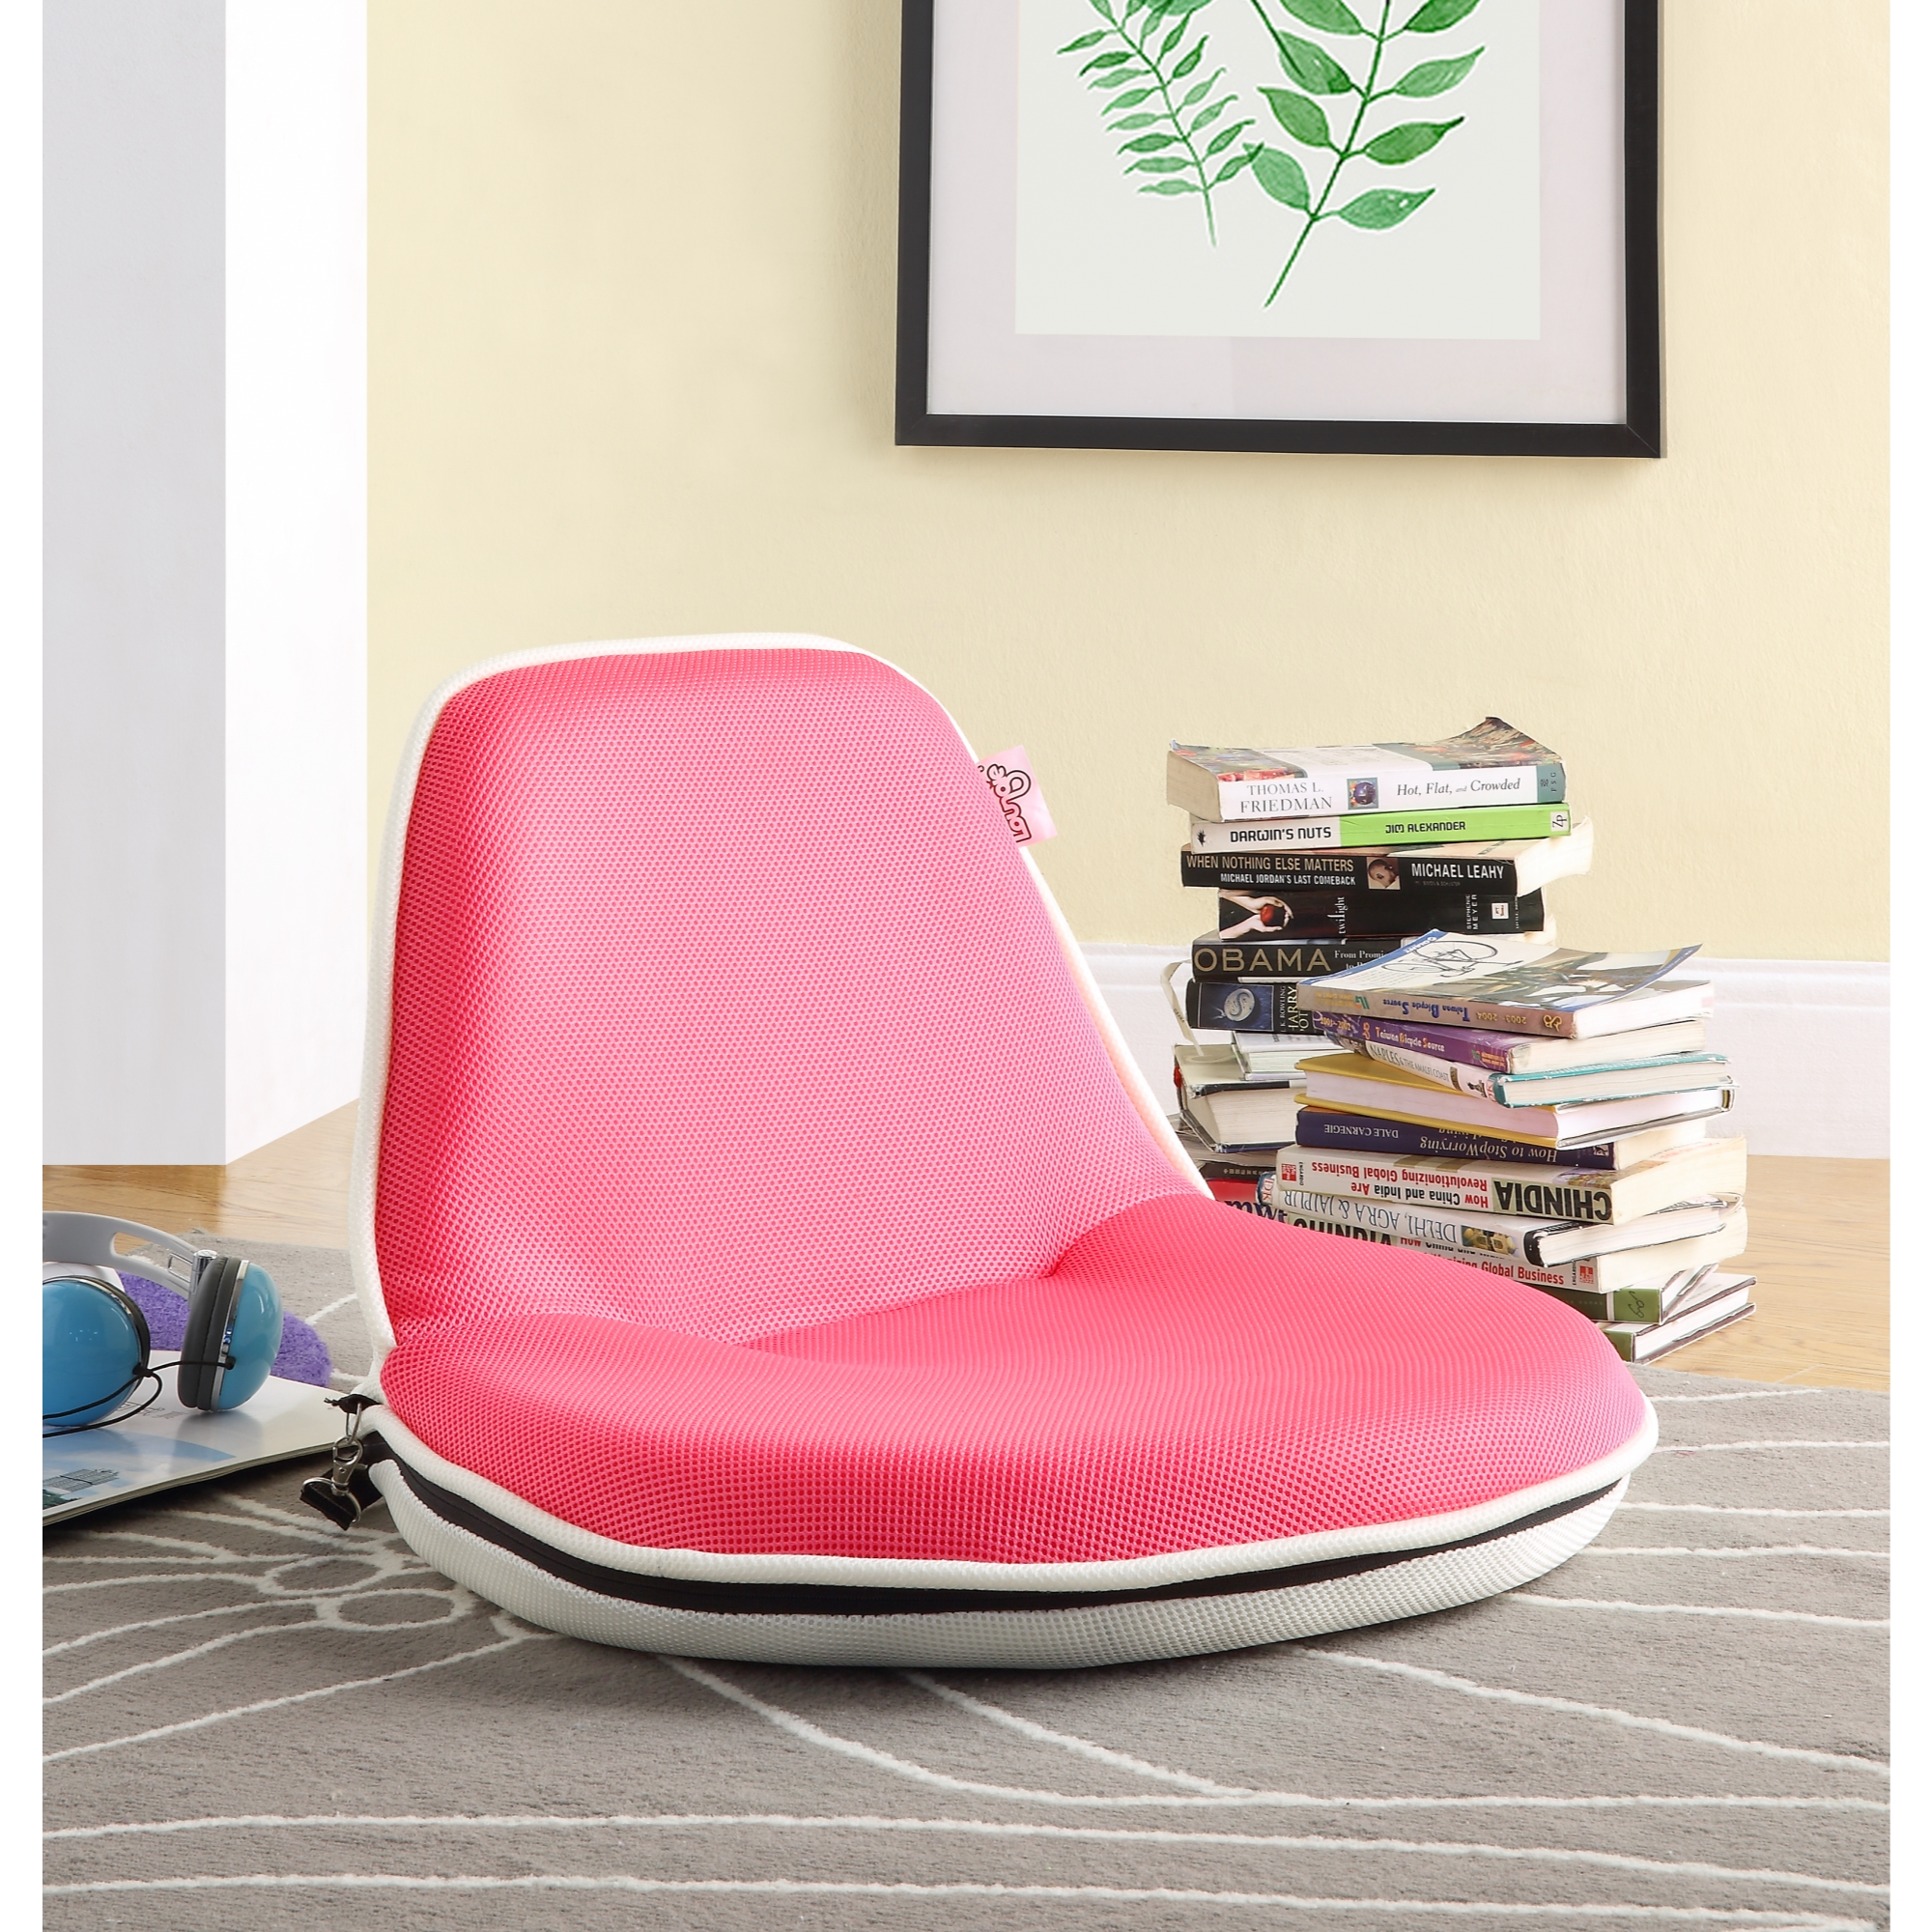 Loungie Grey Mesh Floor Chair - Foldable | Portable with Strap | Indoor and Outdoor | Lightweight